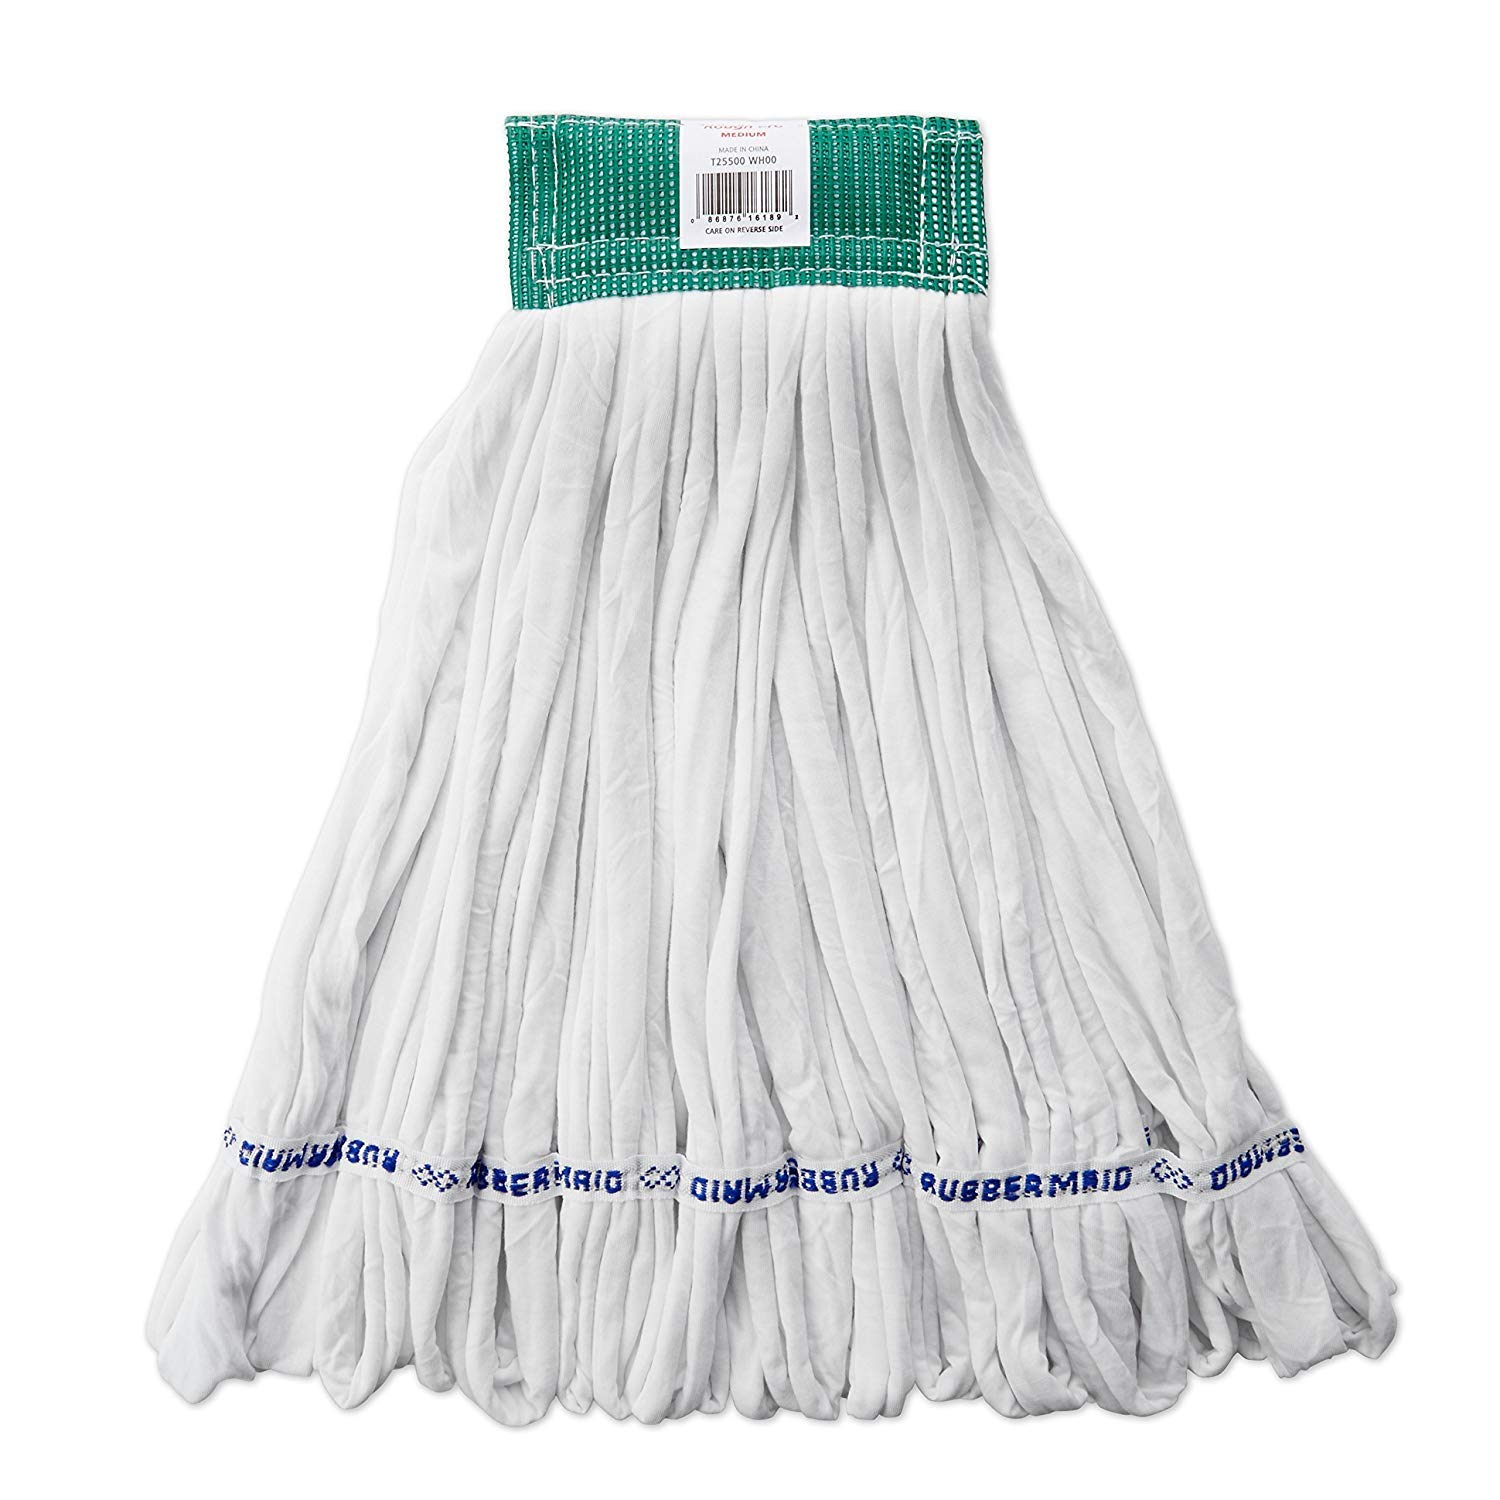 Rubbermaid Commercial Products FGT25500WH00 Rough Floor Wet Mop, Large, 5'' Green Headband, White (Pack of 12)